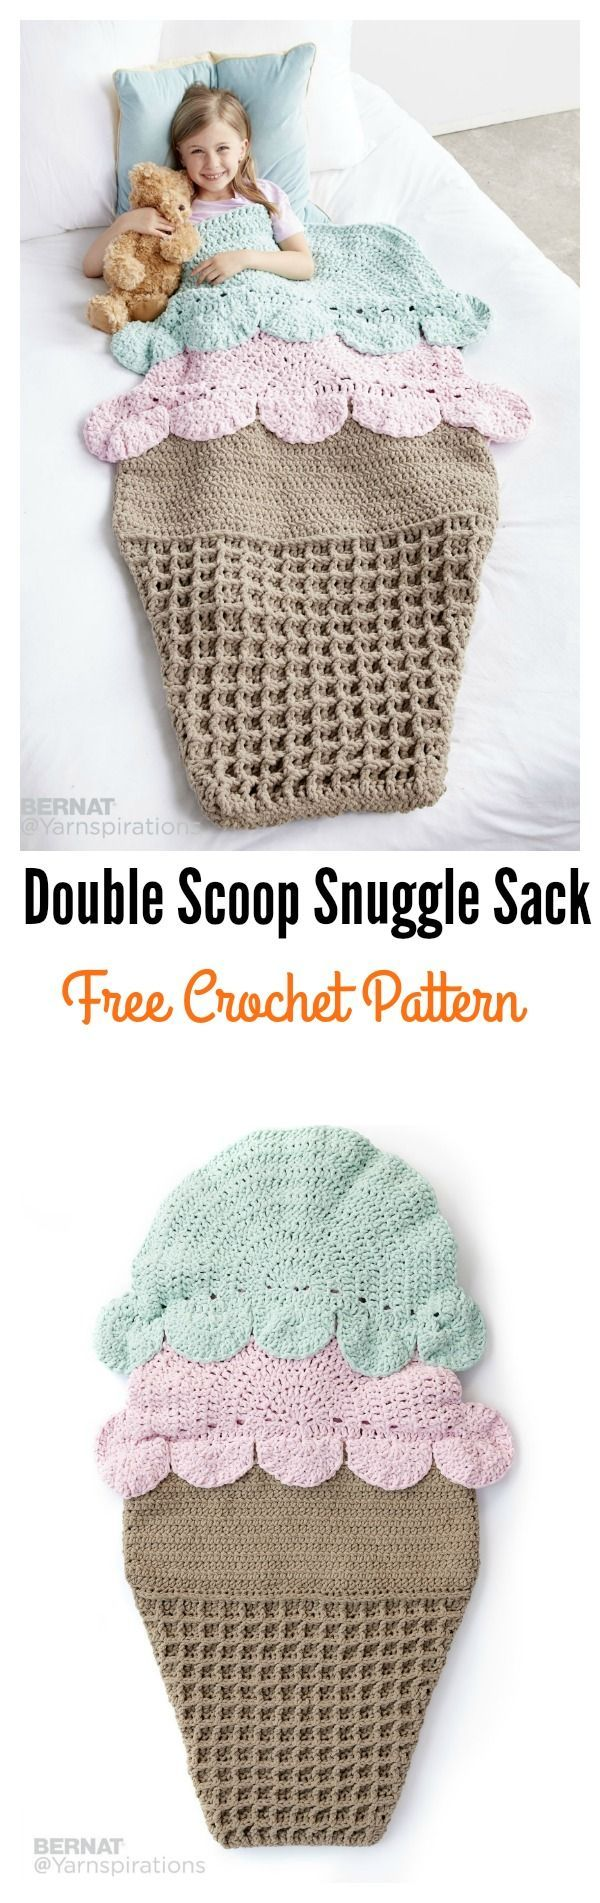 Crochet Double Scoop Snuggle Sack Free Pattern & Video Tutorial